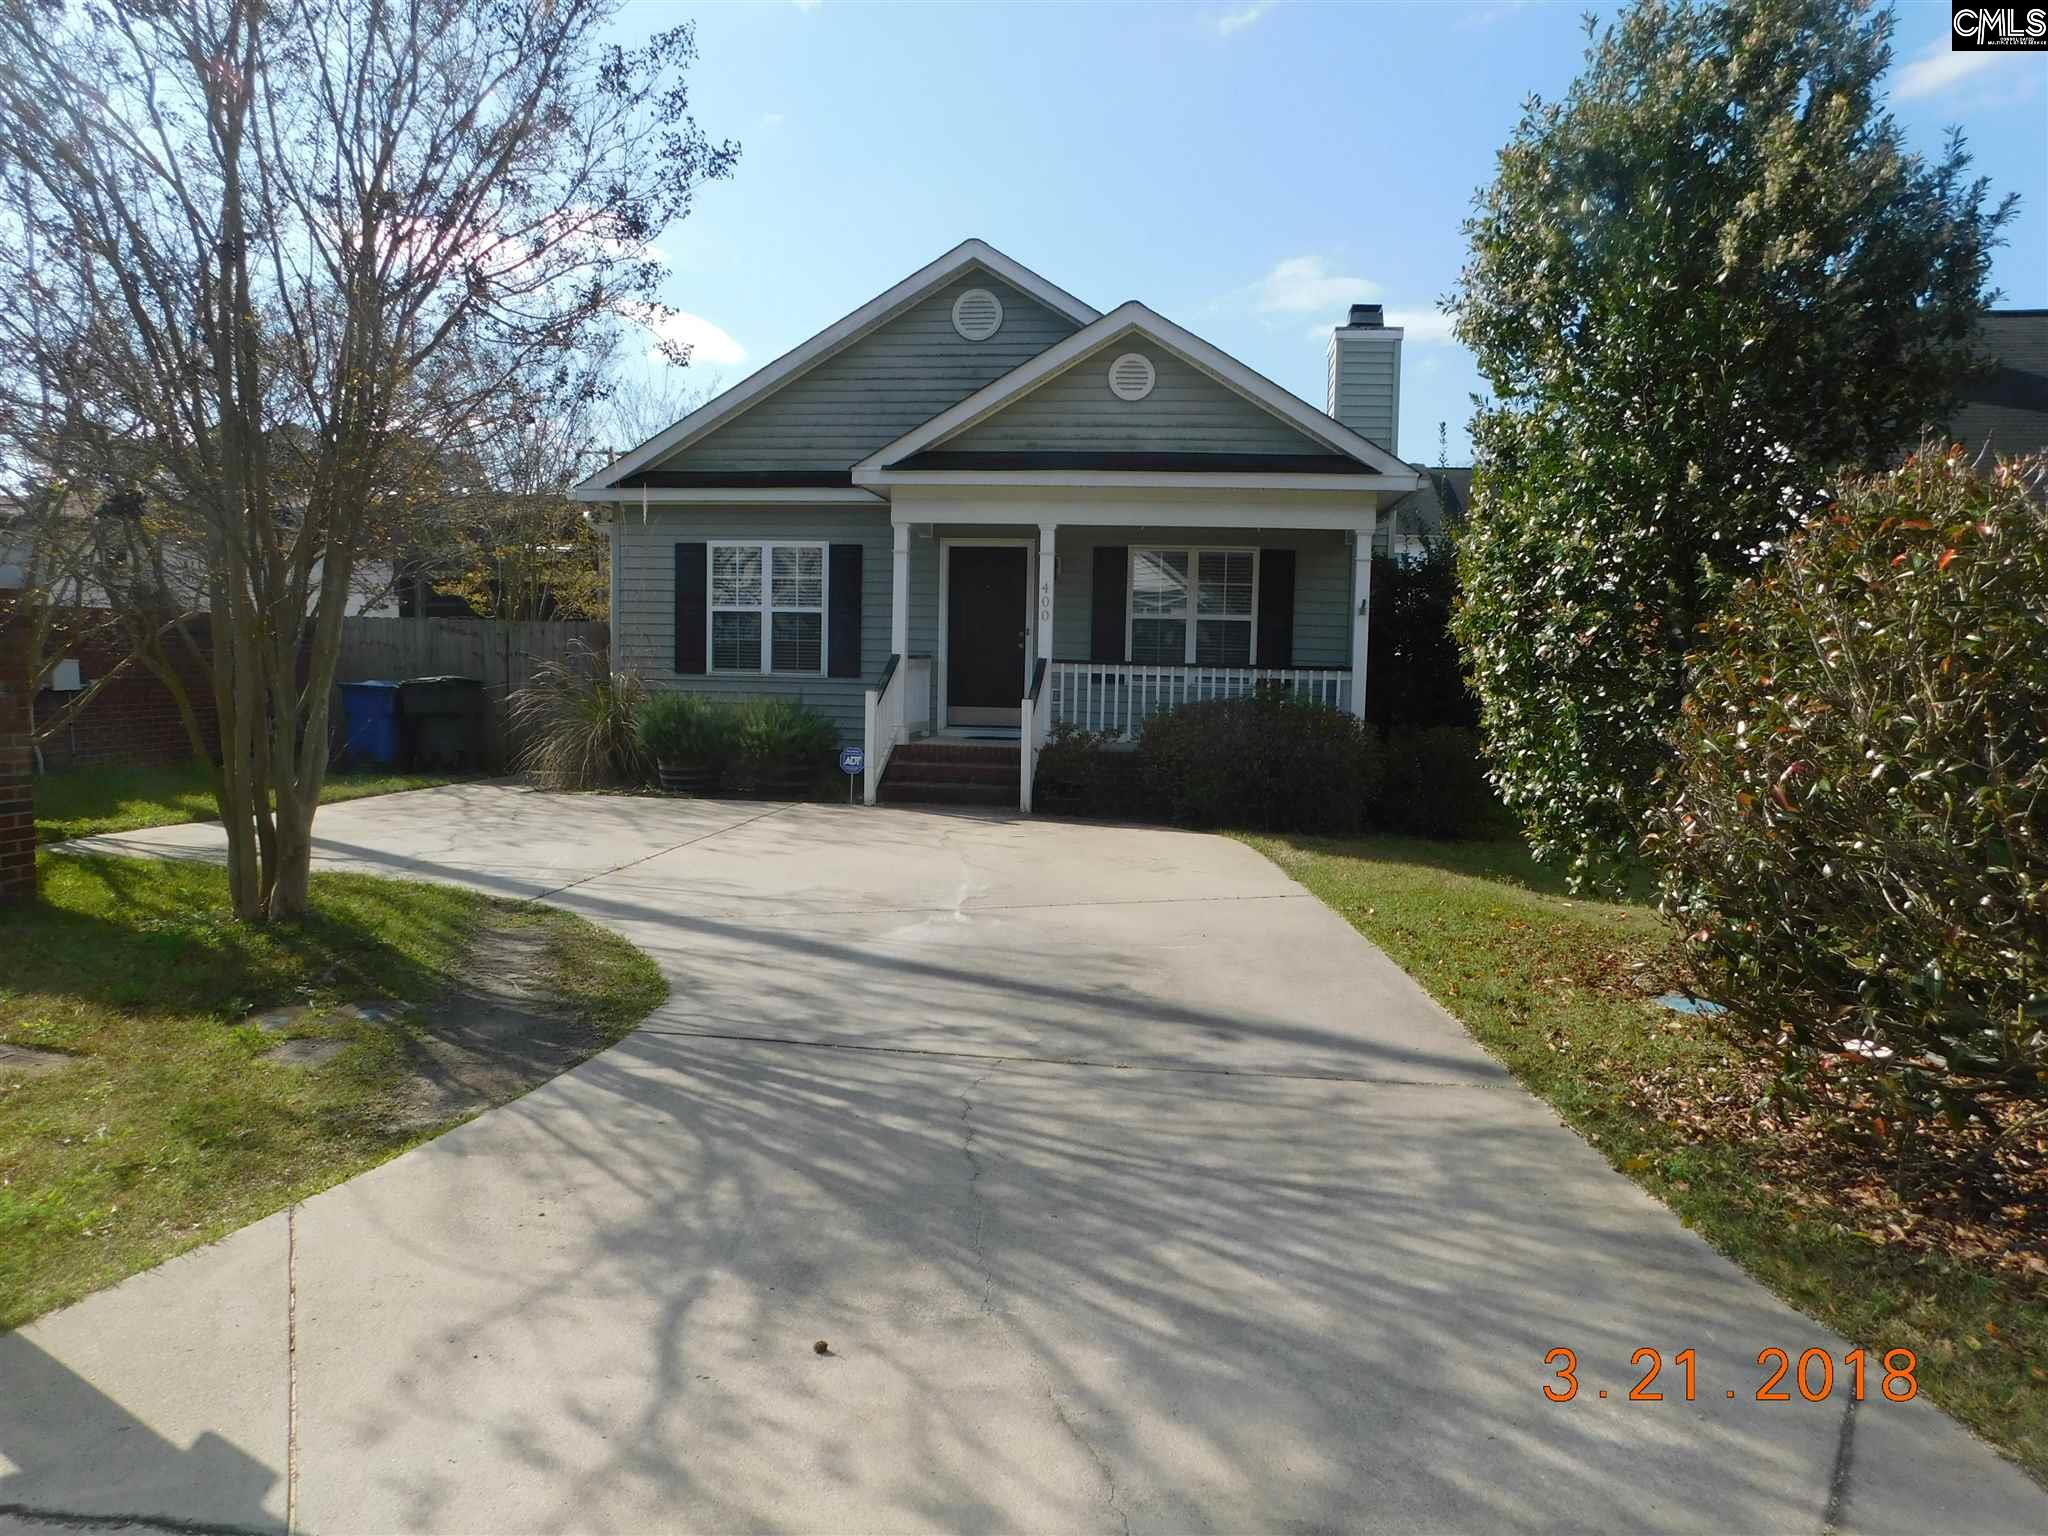 407 Cami Forest Columbia, SC 29209